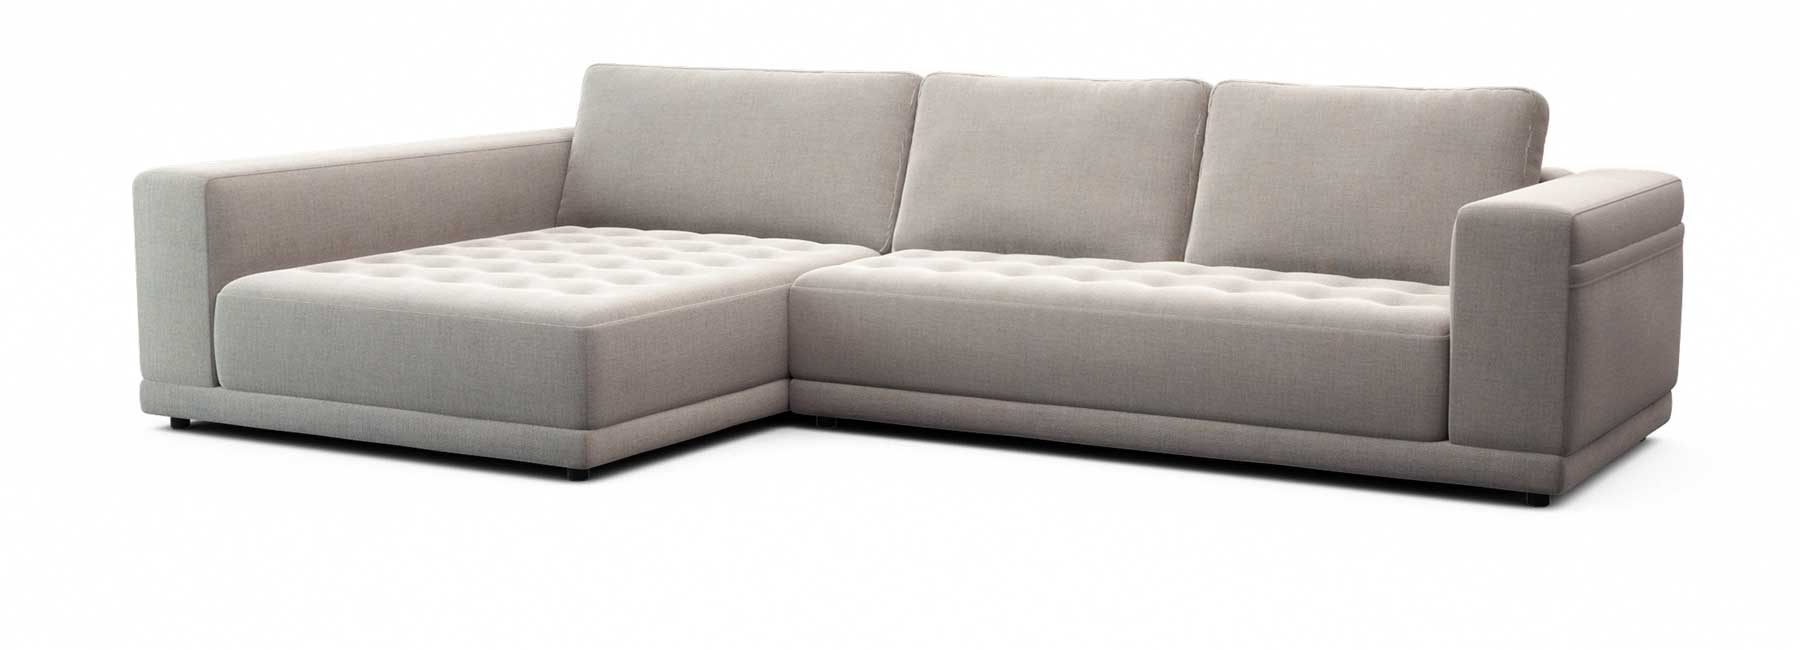 Felix modular sofa deep seat comfort tufted seat lounge couch king living